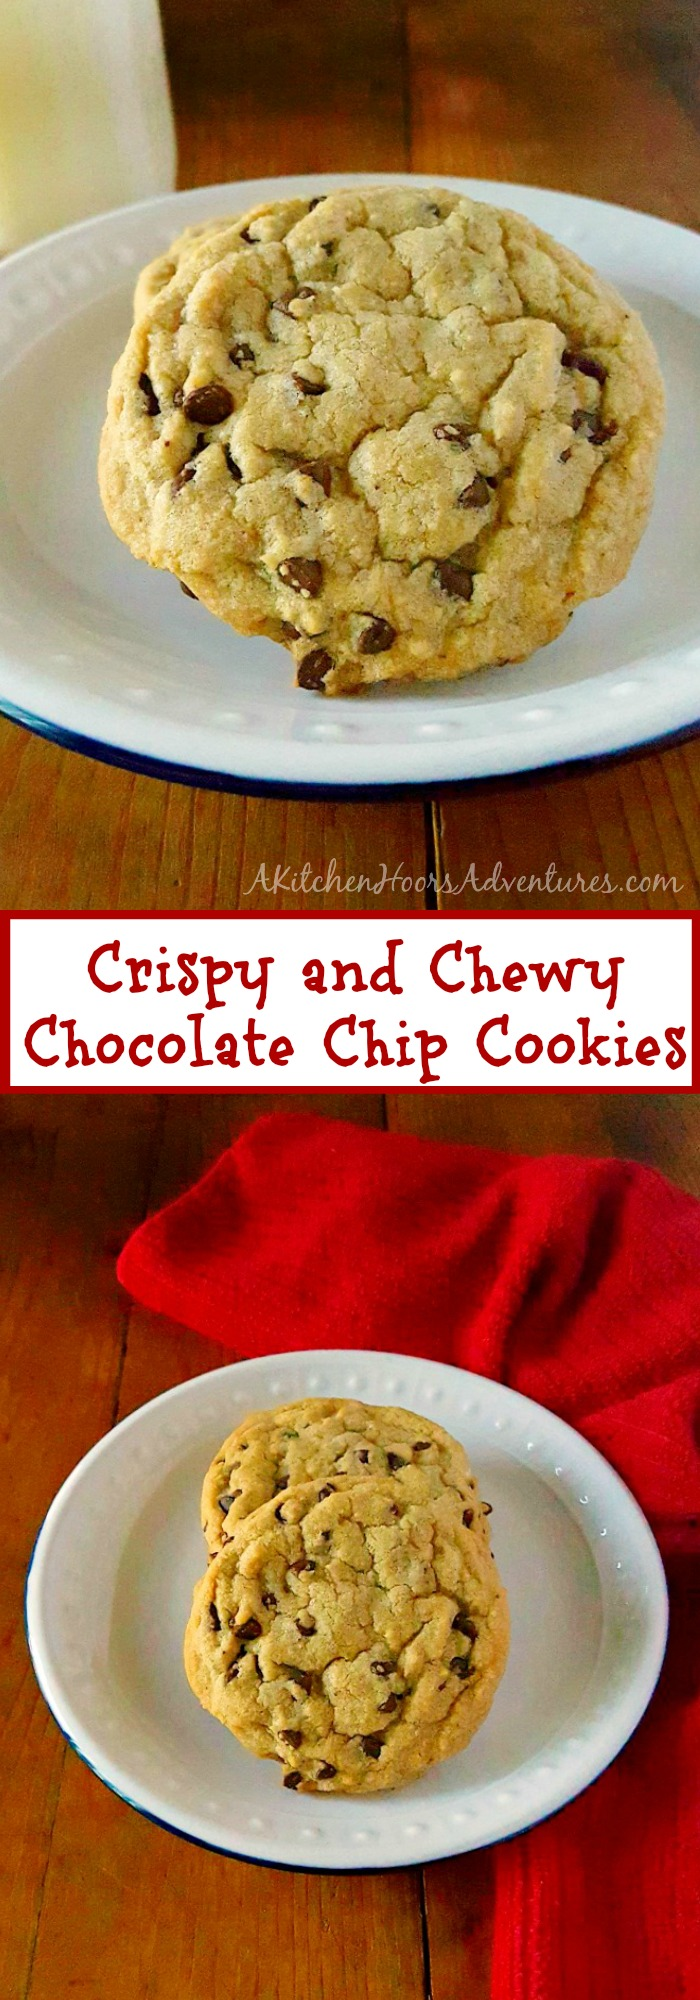 Perfectly crispy on the edges and chewy in the middle, these Crispy and Chewy Chocolate Chip Cookies are the go to favorite in our house and I know it will be in yours.